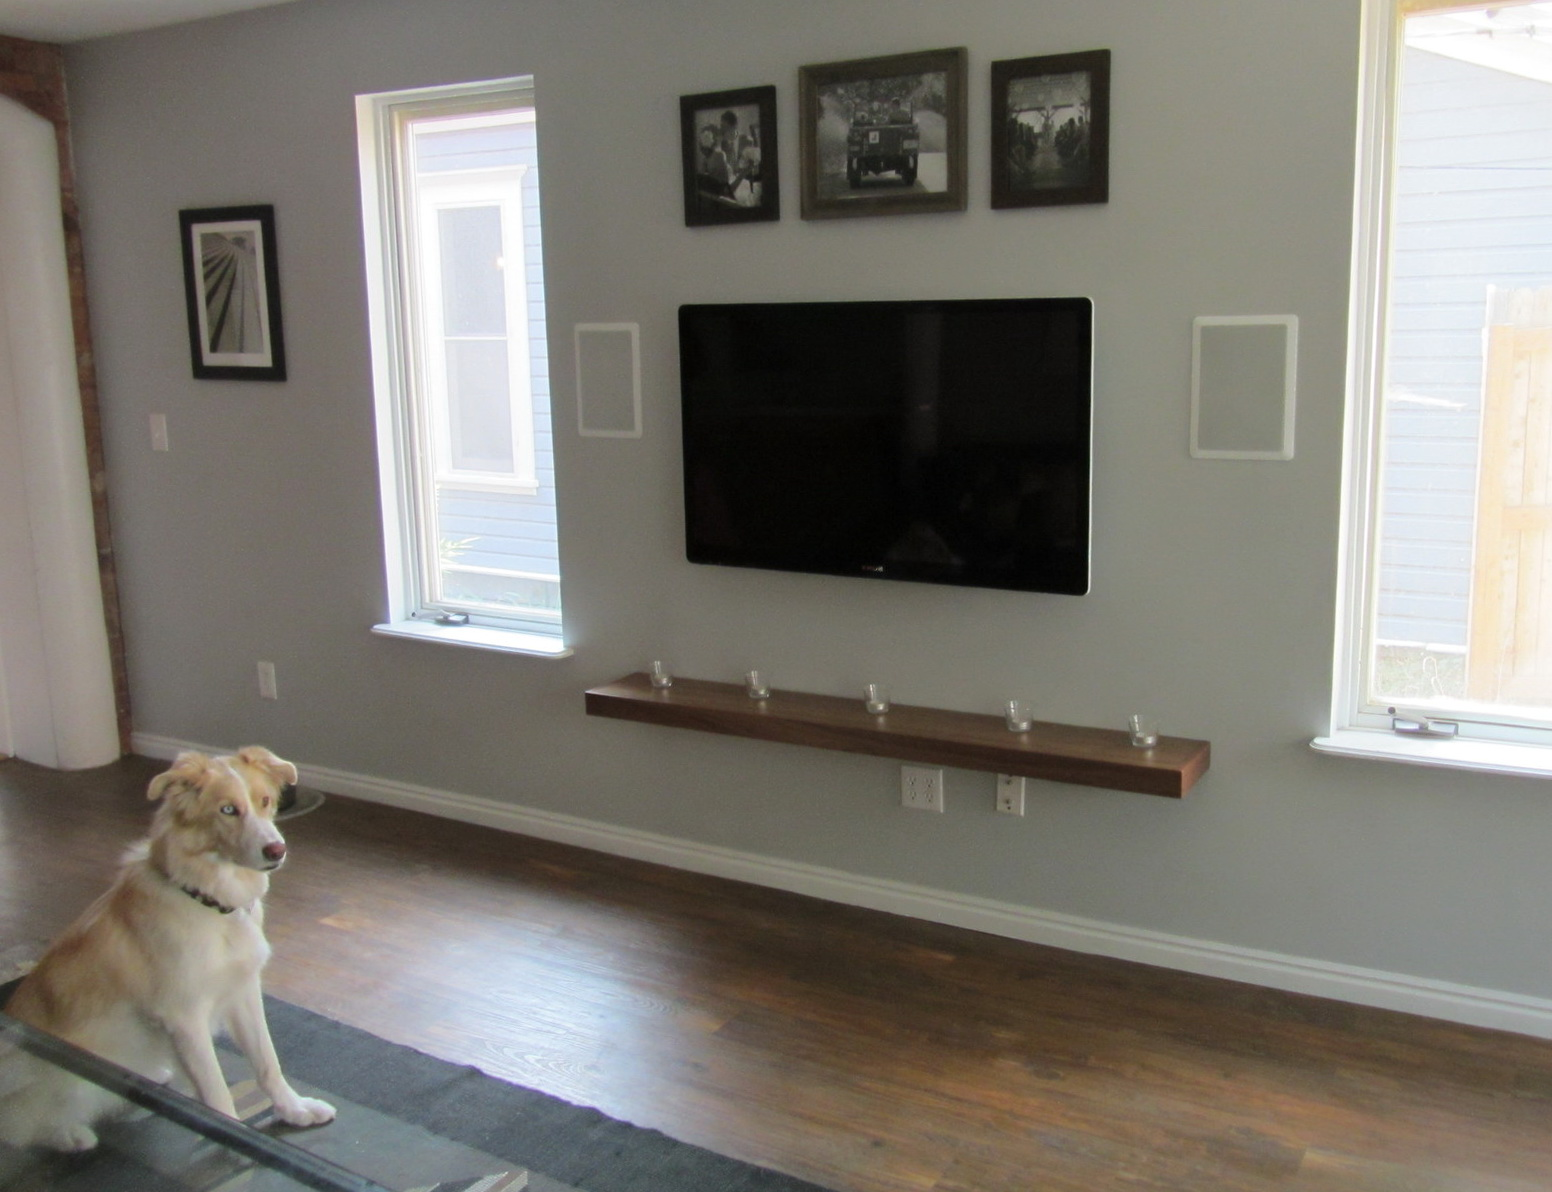 Wall Mounted Shelf For Tv Components